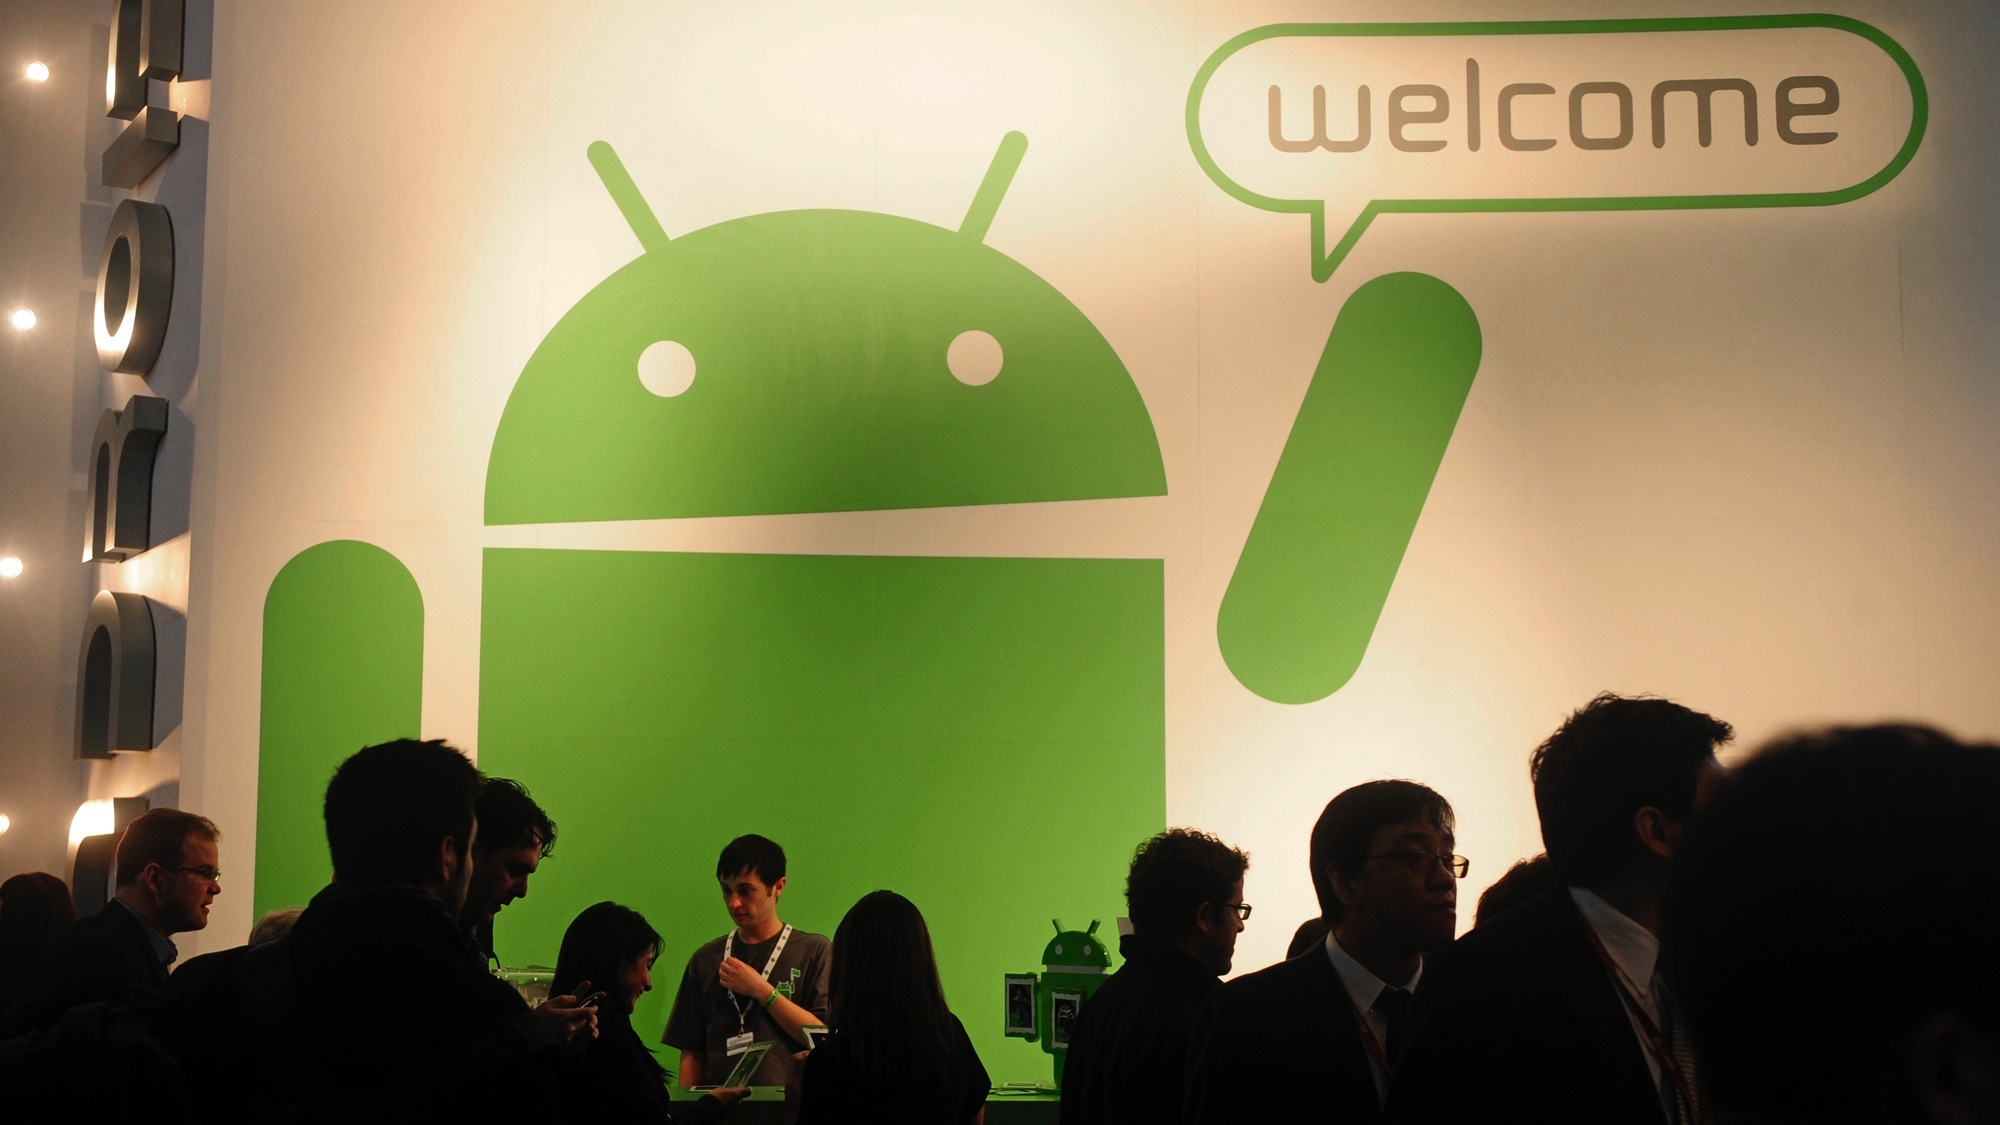 Participants gather around the Google Android stand at the Mobile World Congress in Barcelona, Spain, Thursday, Feb. 17, 2011. The Mobile World Congress will be held from Feb. 14-17. (AP Photo/Manu Fernandez)